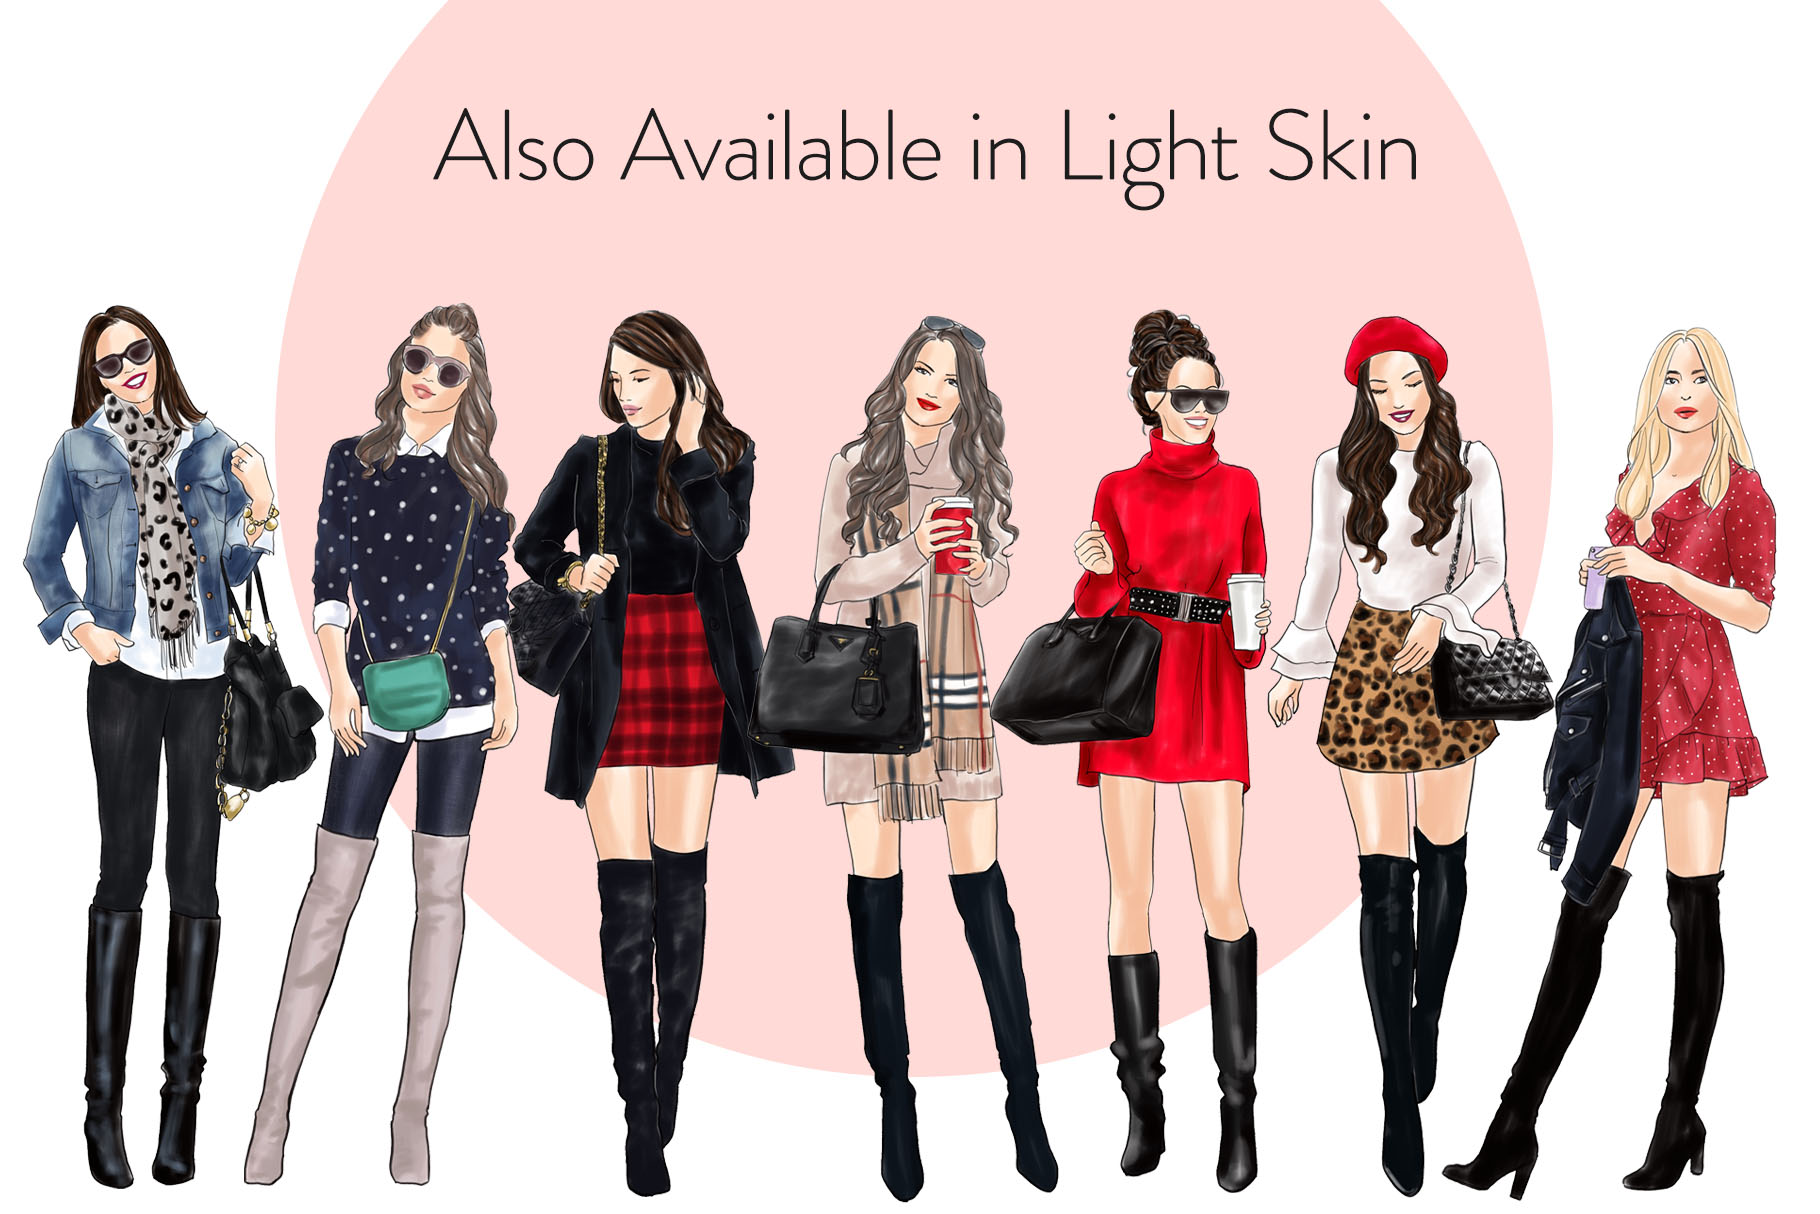 Fashion illustration clipart - Girls in Boots 1 - Dark Skin example image 4